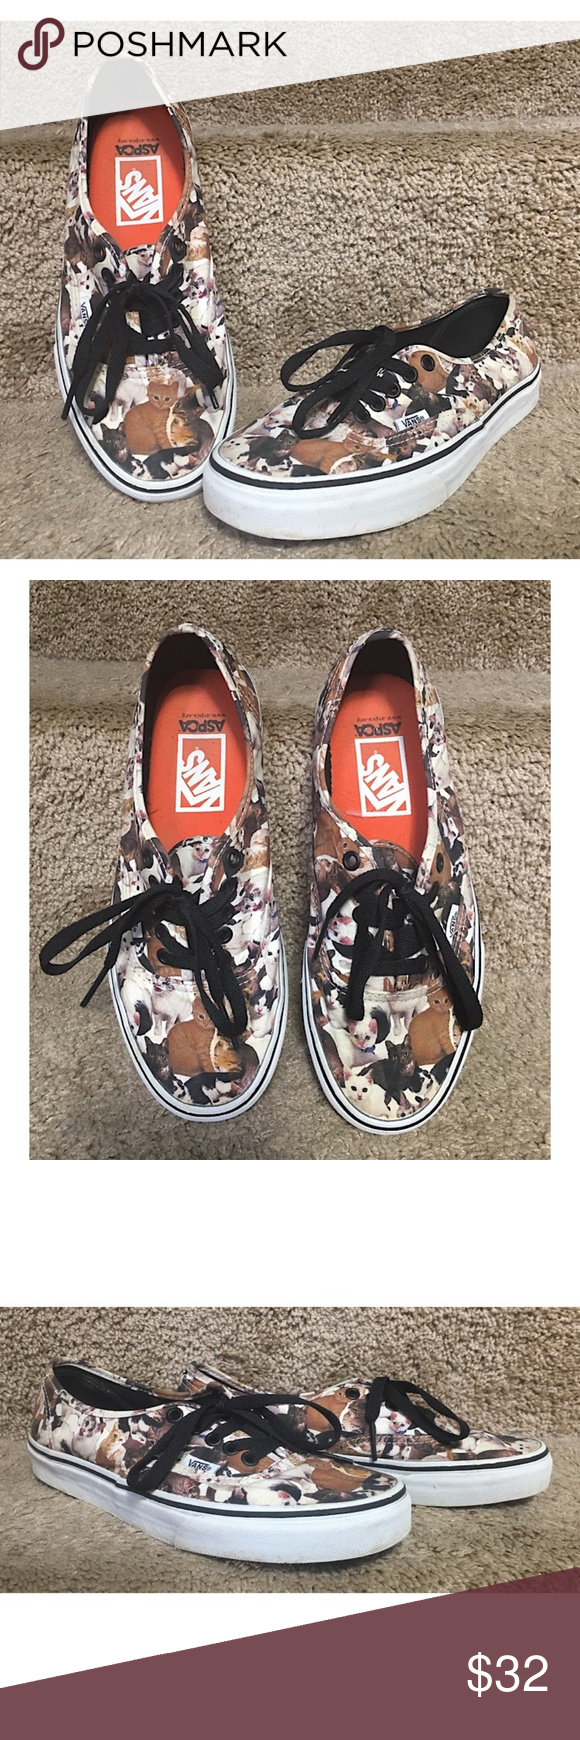 Vans Aspca Authentic Cat Print Kitty Unisex Vans Aspca Authentic Cat Print Kitty Men S Sz 8 Women S Sz 9 5 Kittens Pre Owned In Gr Shoes Vans Loafer Flats